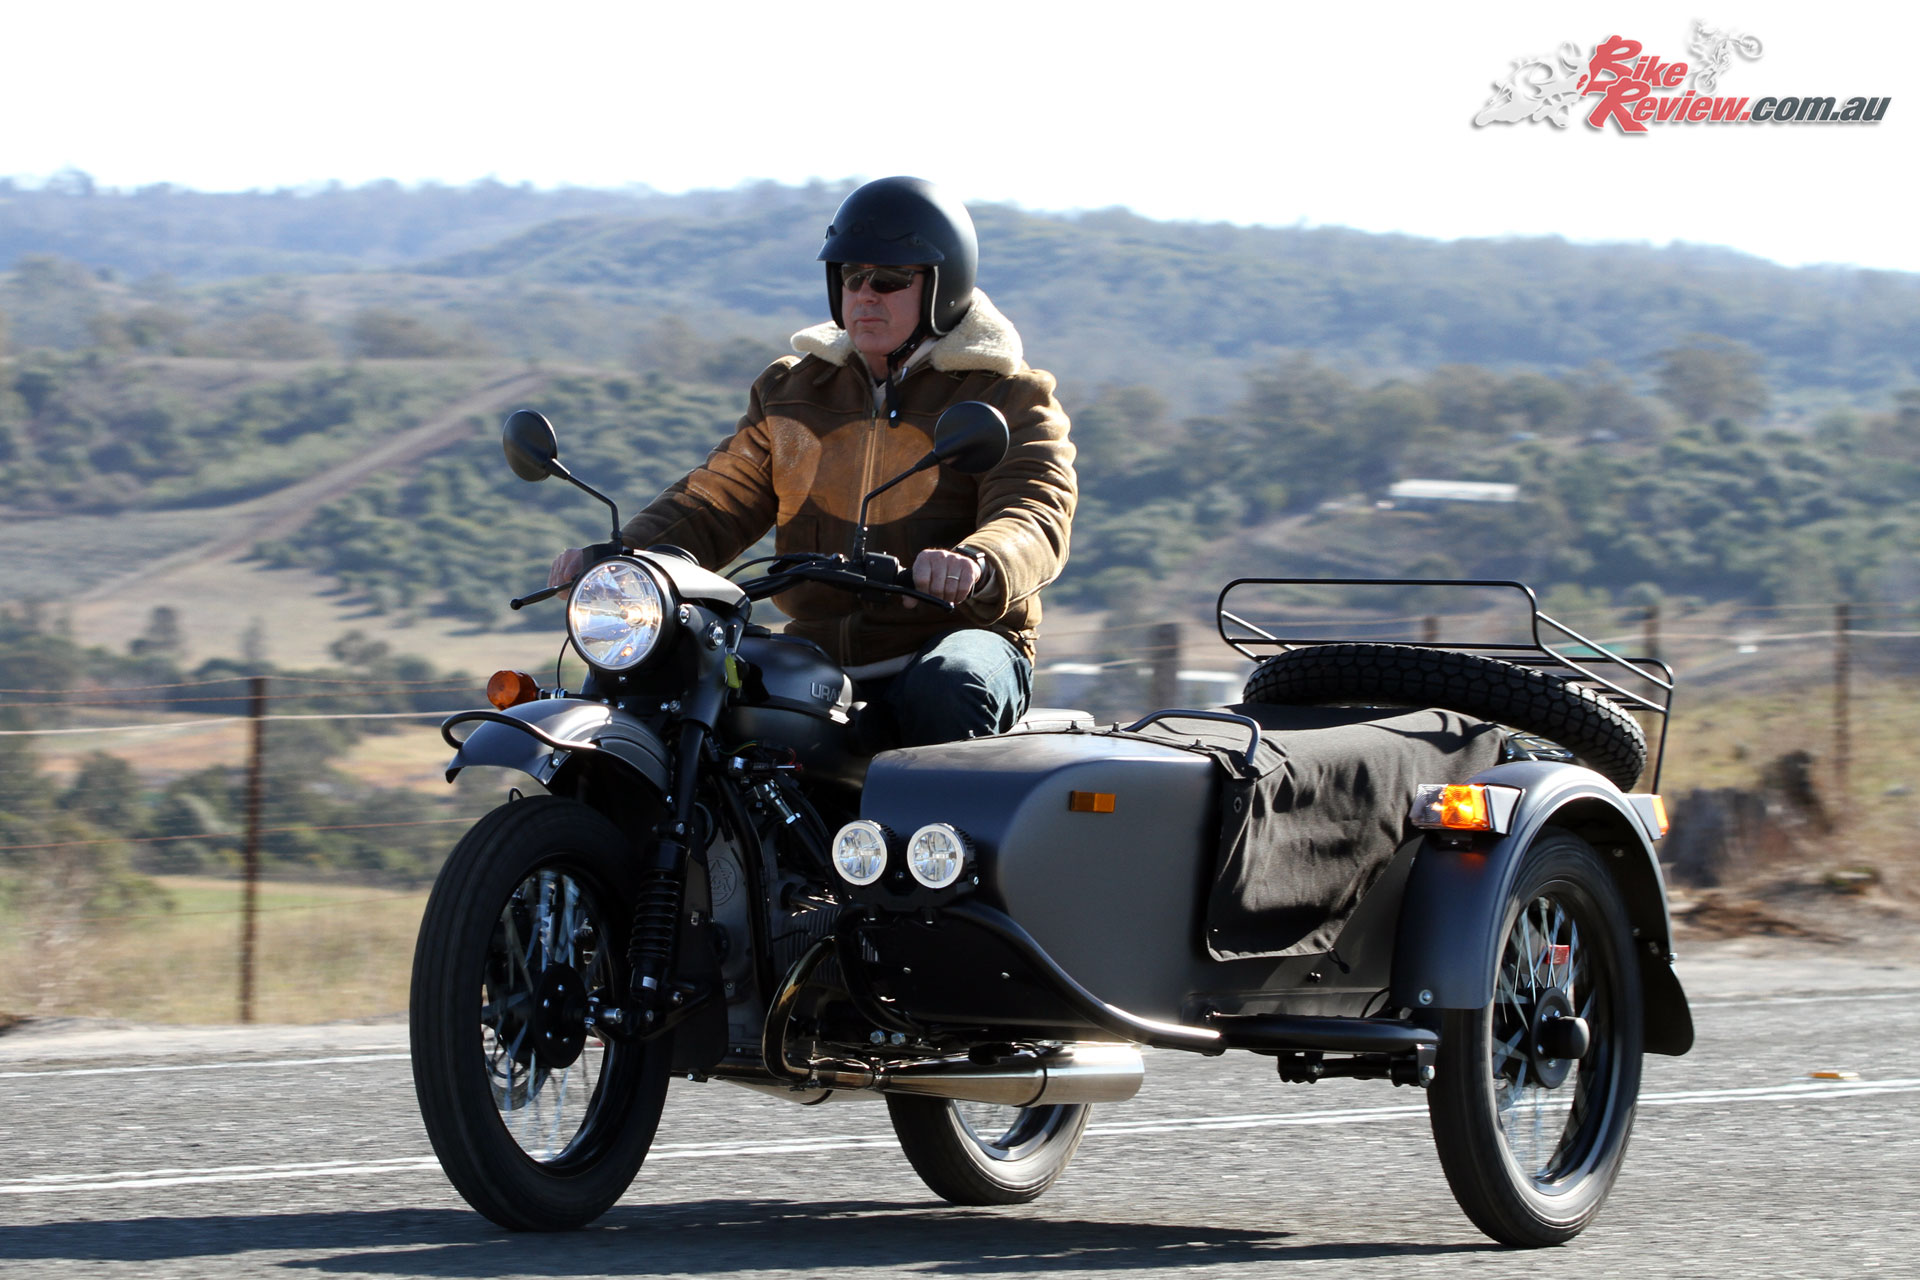 For the right buyer the Ural Ranger will offer a value-packed proposition